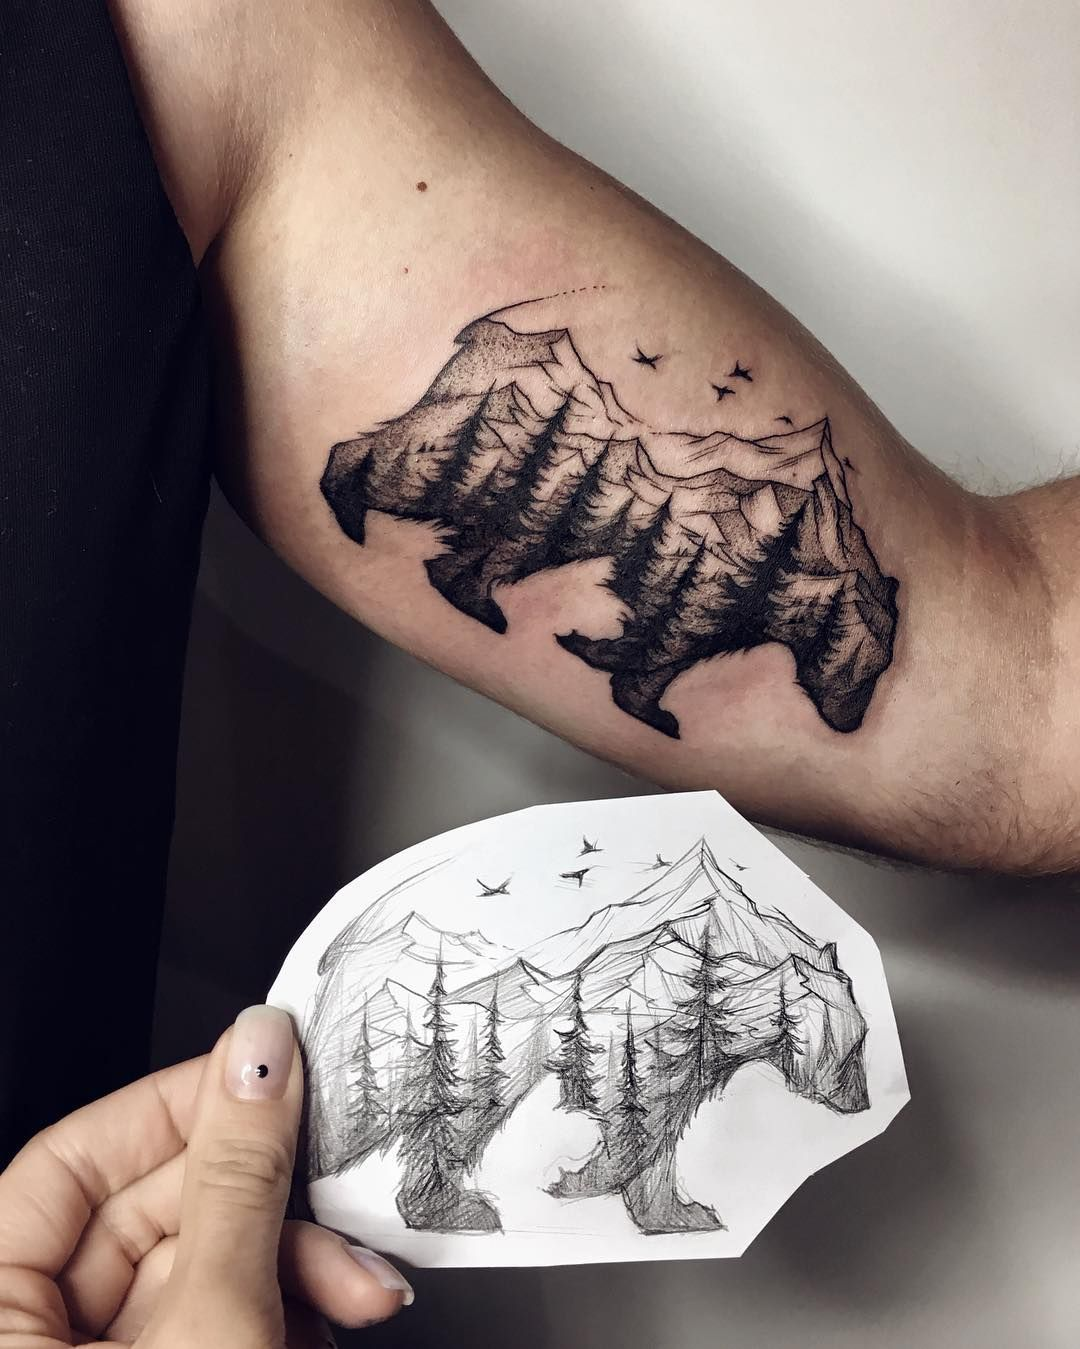 Great black bear with trees tattoo idea on the sleeve